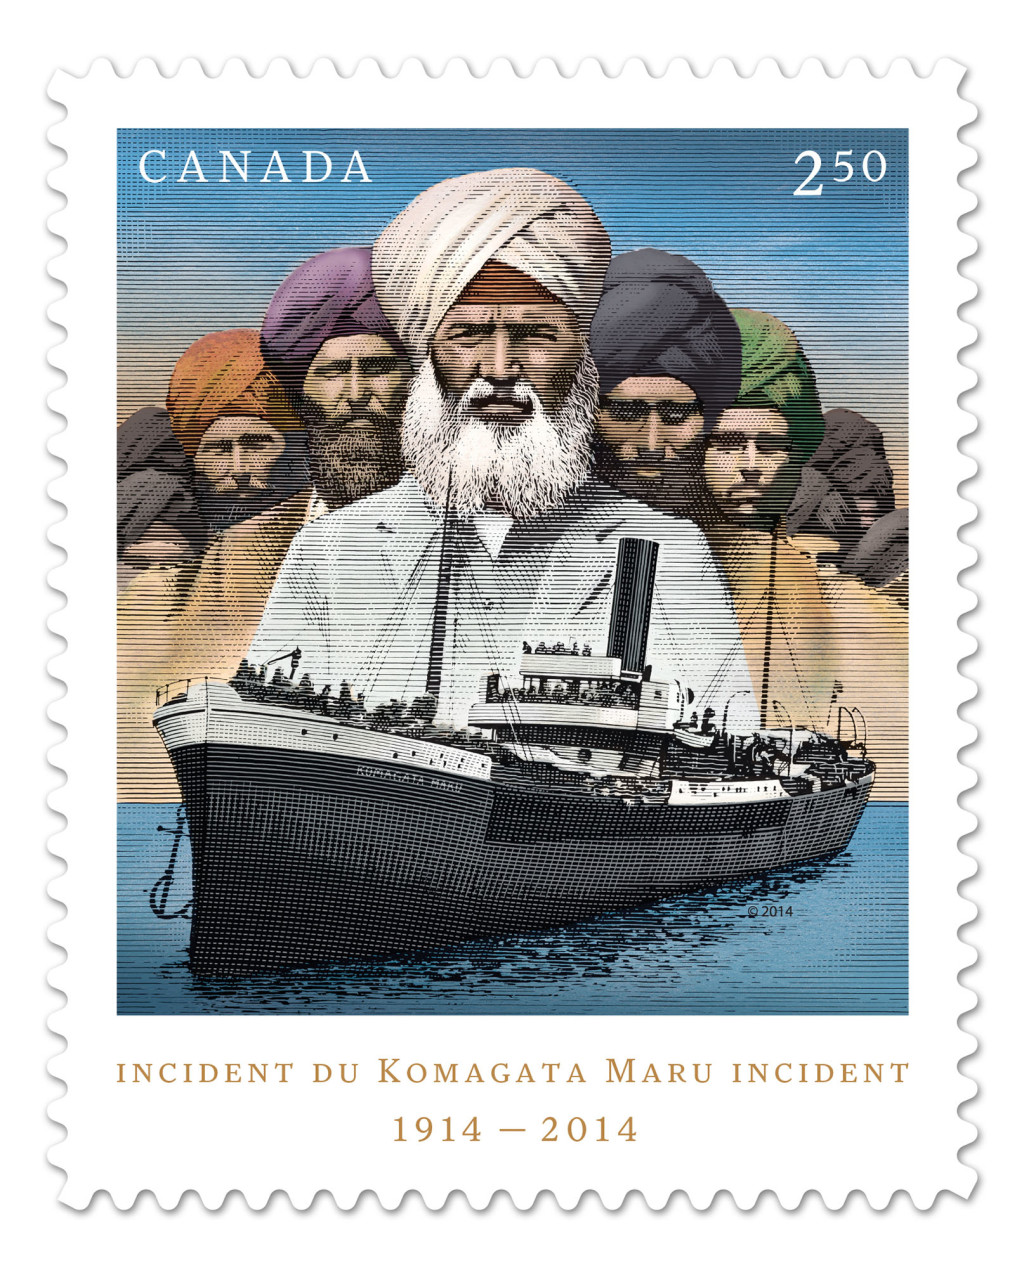 CANADA POST - 100th-year anniversary - Komagata Maru incident